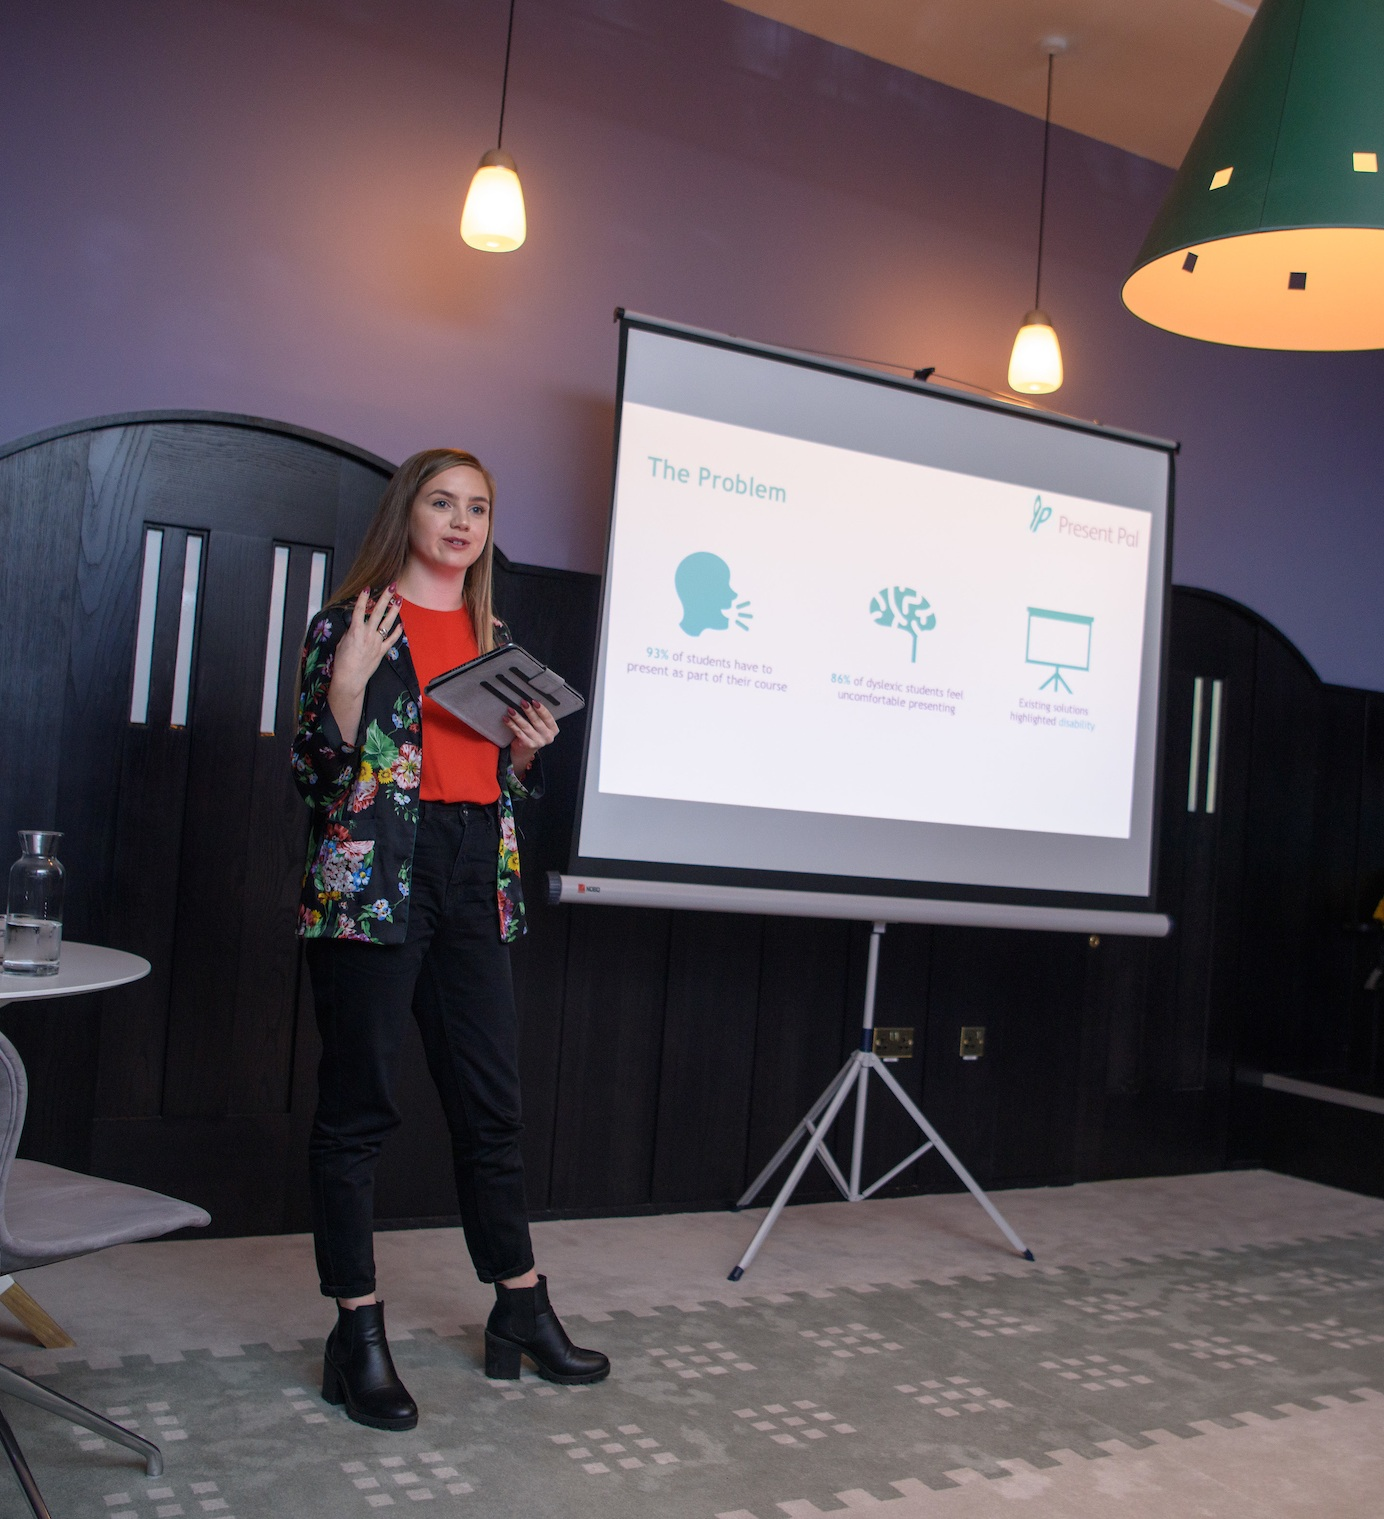 Leah pitching on behalf of Estendio at the WES Investor Day.